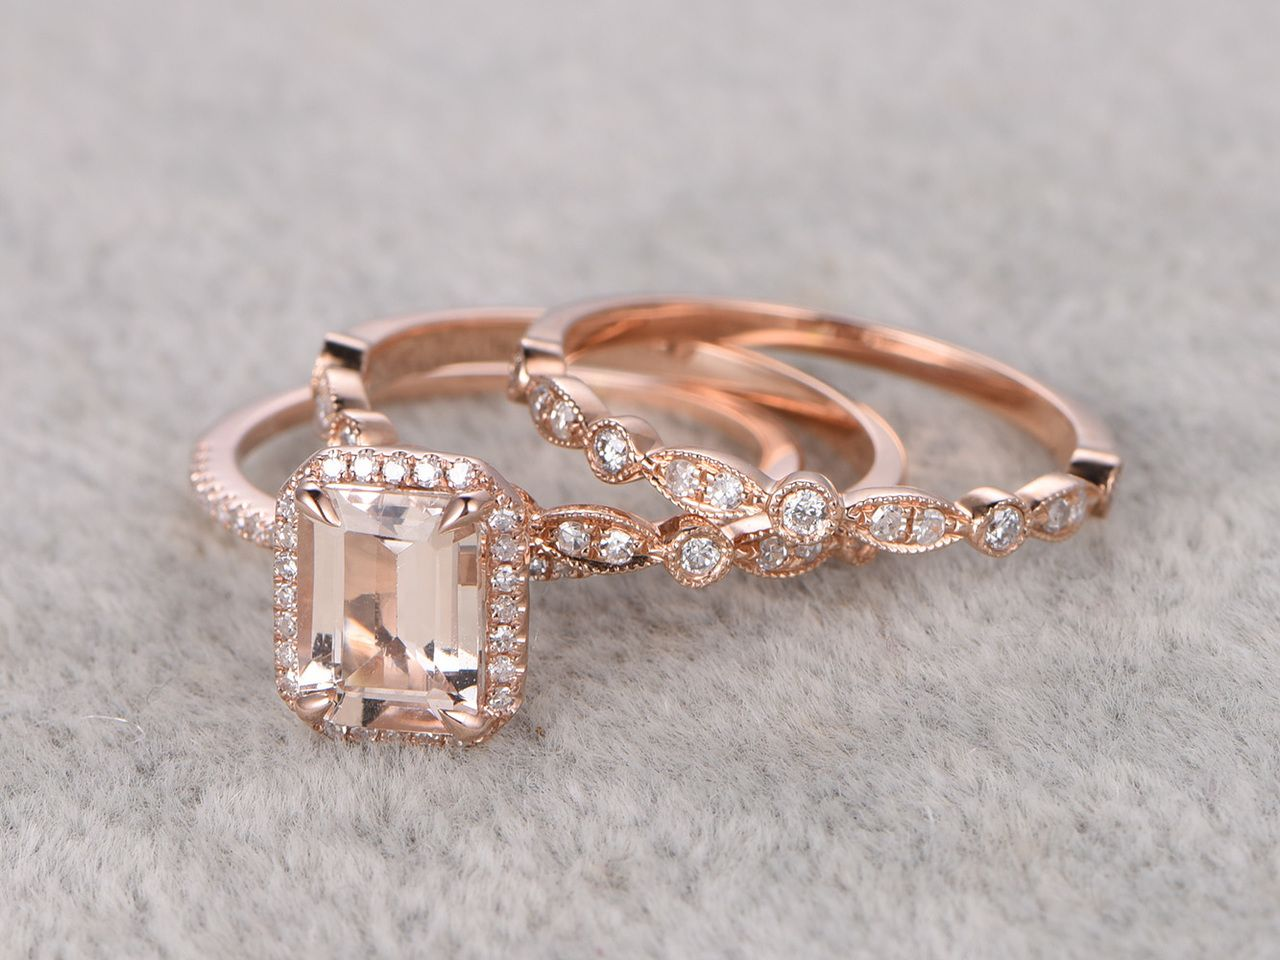 12ct emerald cut morganite wedding set art deco antique diamond bridal ring 14k rose gold - Morganite Wedding Ring Set